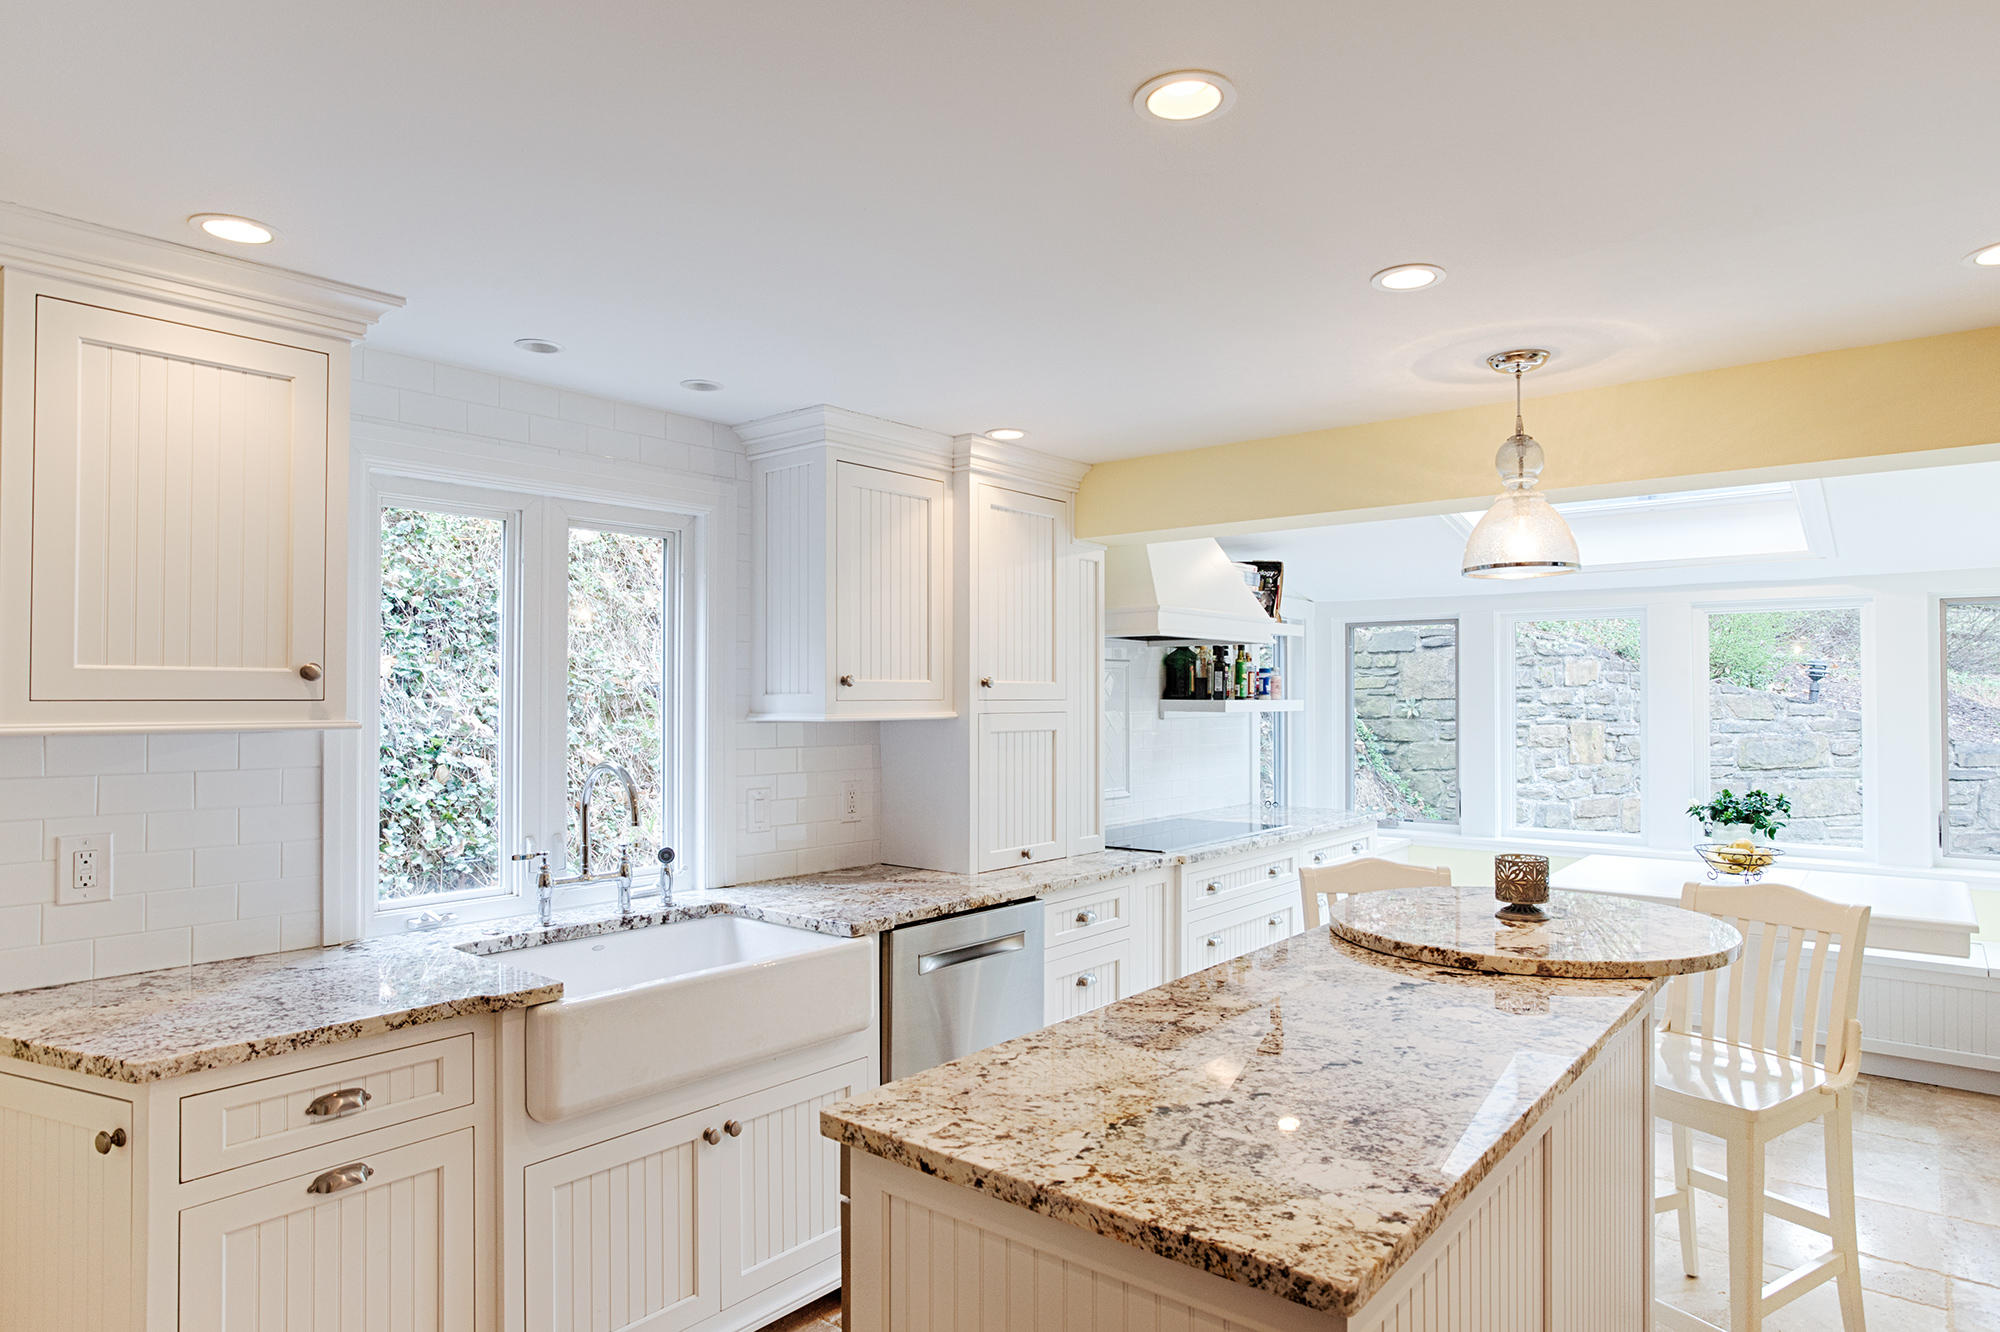 Kitchen renovation - Radnor PA